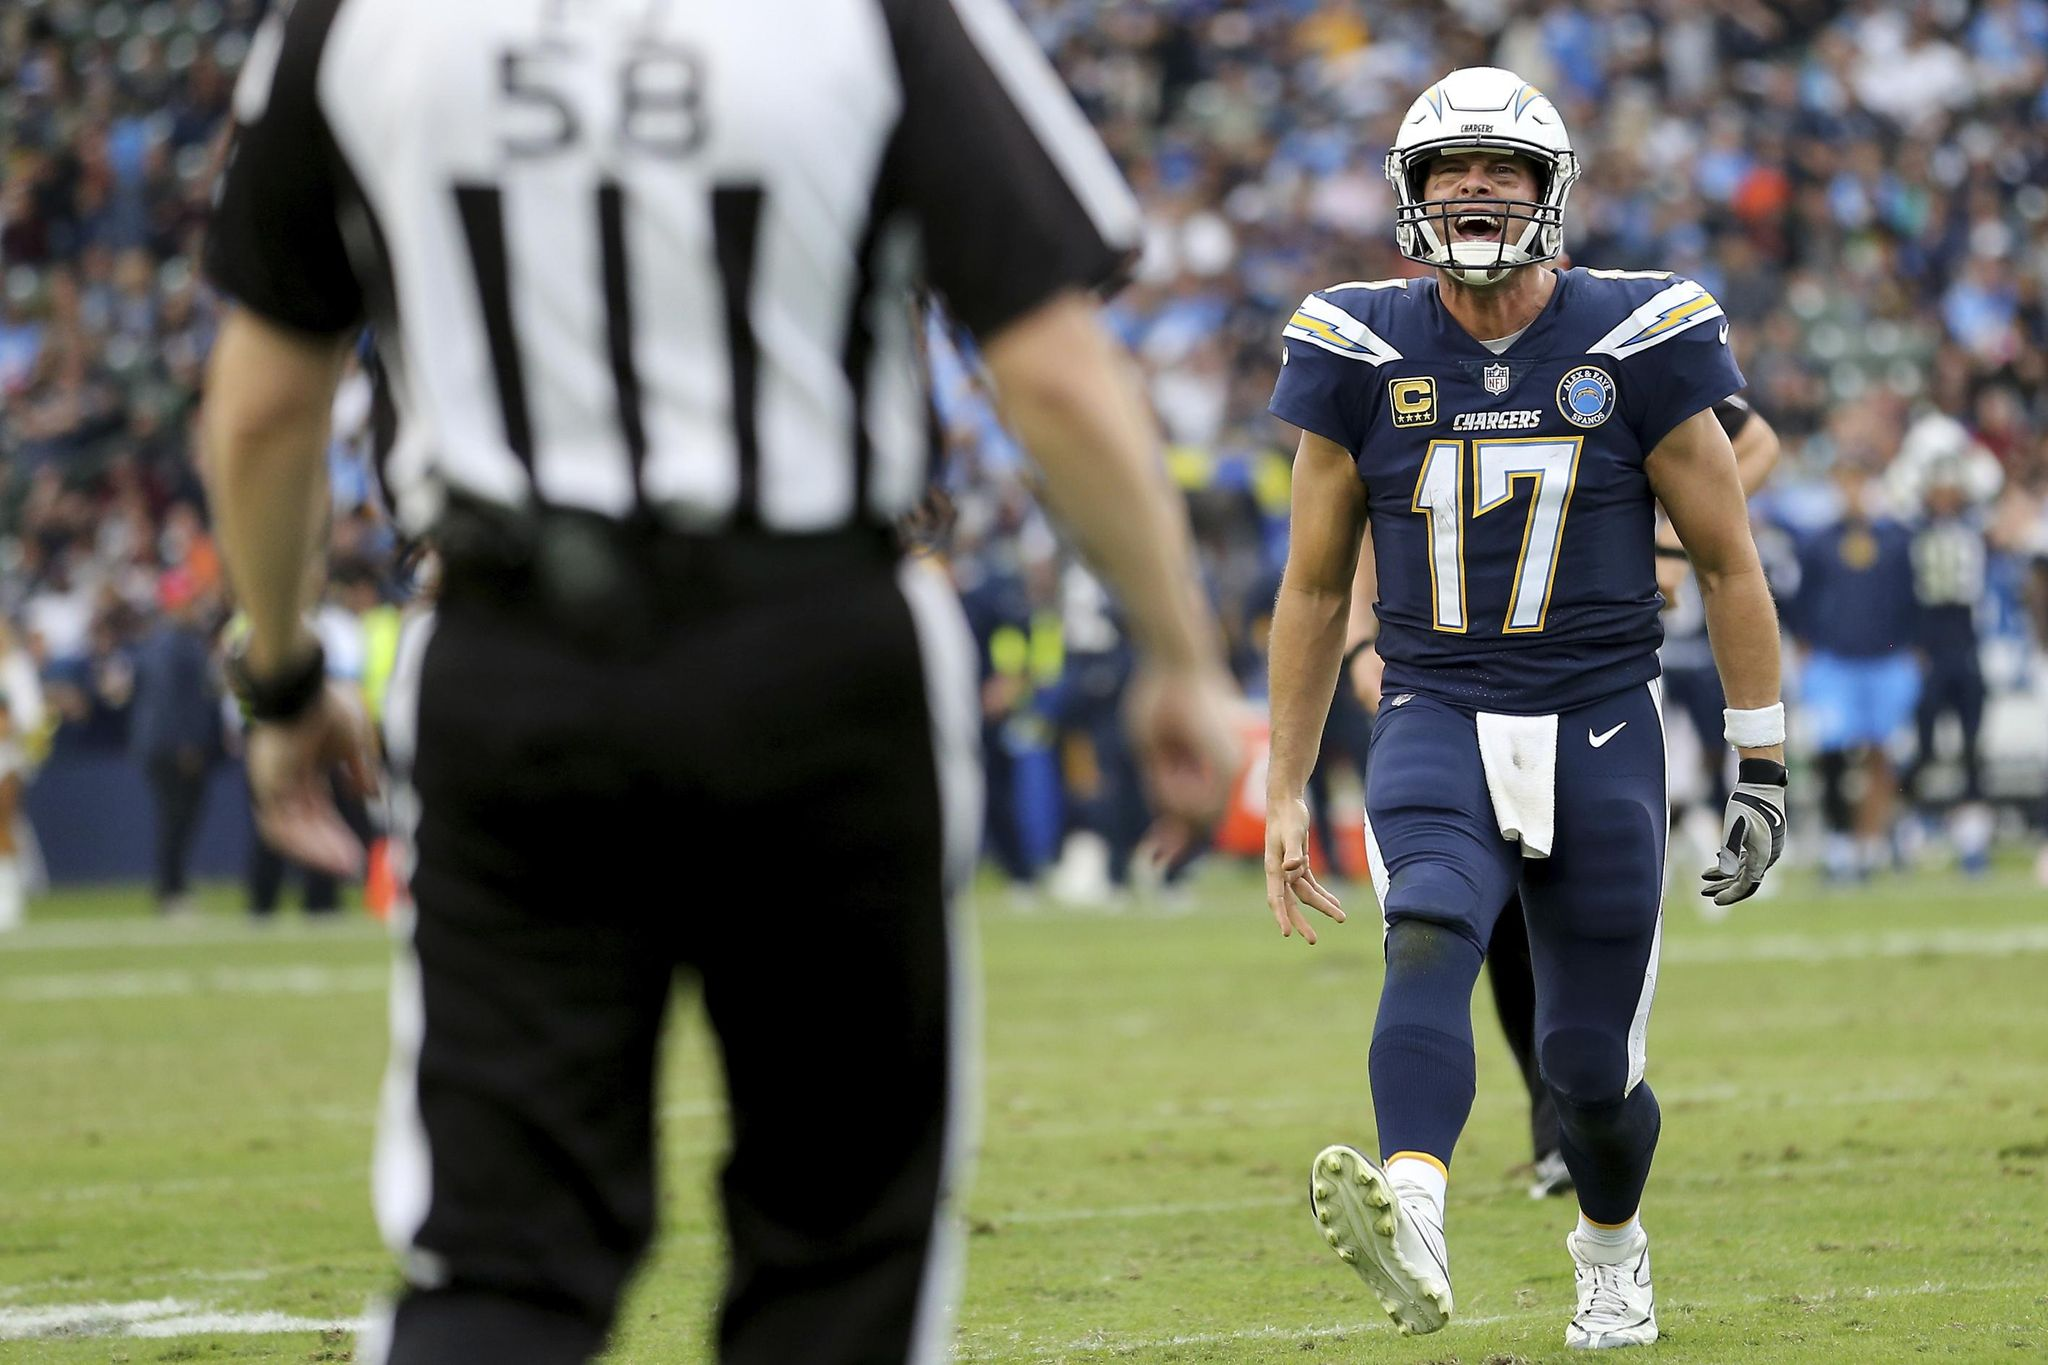 Bengals_chargers_football_64799_s2048x1365